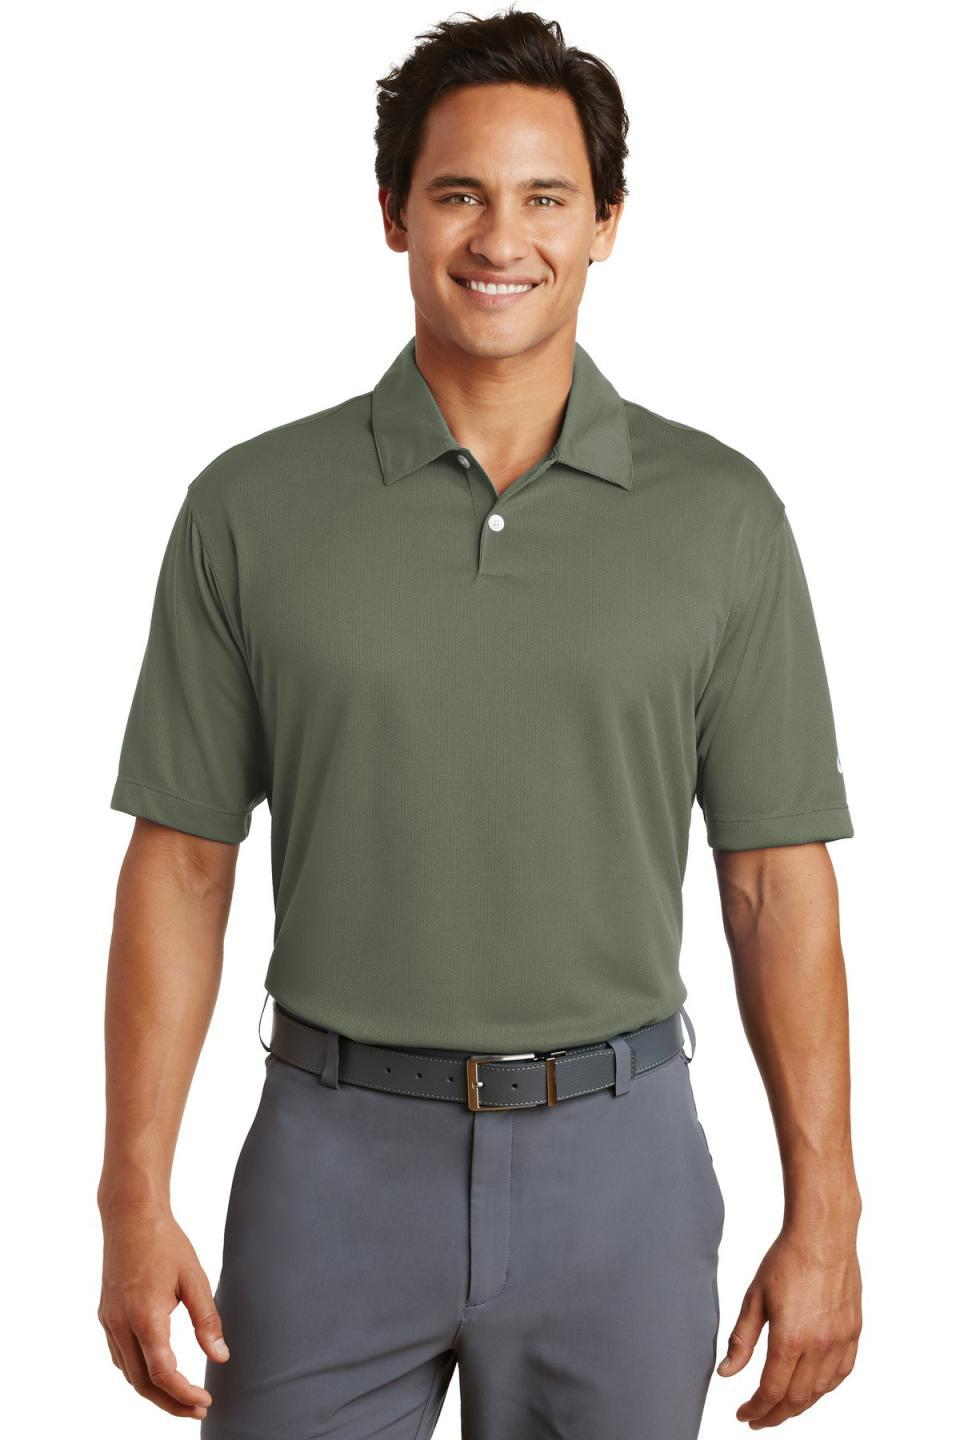 Nike Men's Dri-FIT Pebble Texture Polo